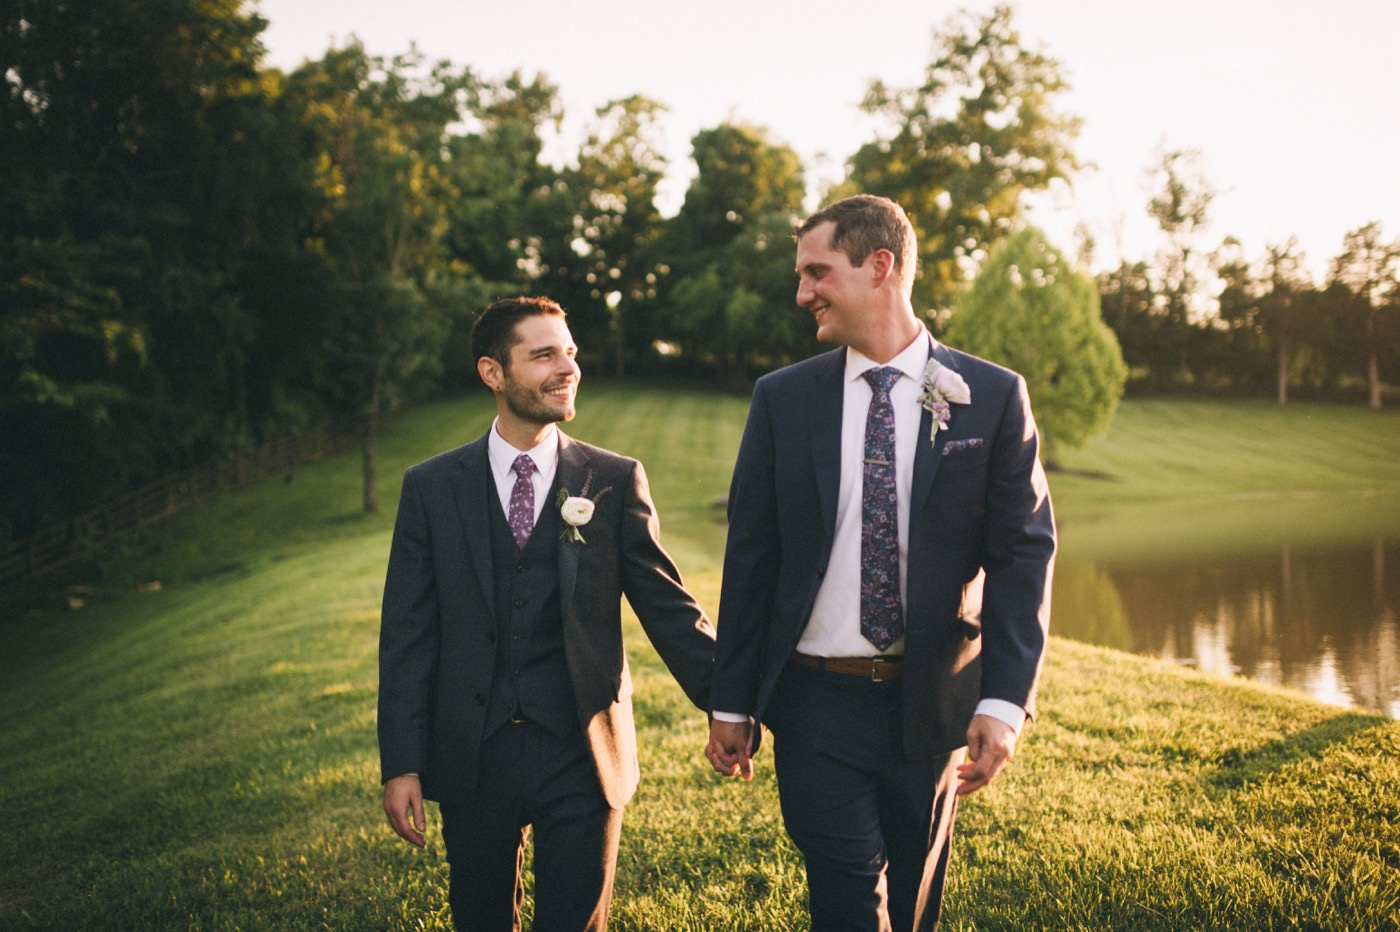 Will-Nate-Louisville-LGBTQ-Pride-Month-Kentucky-Wedding-By-Sarah-Katherine-Davis-Photograpy0064.JPG